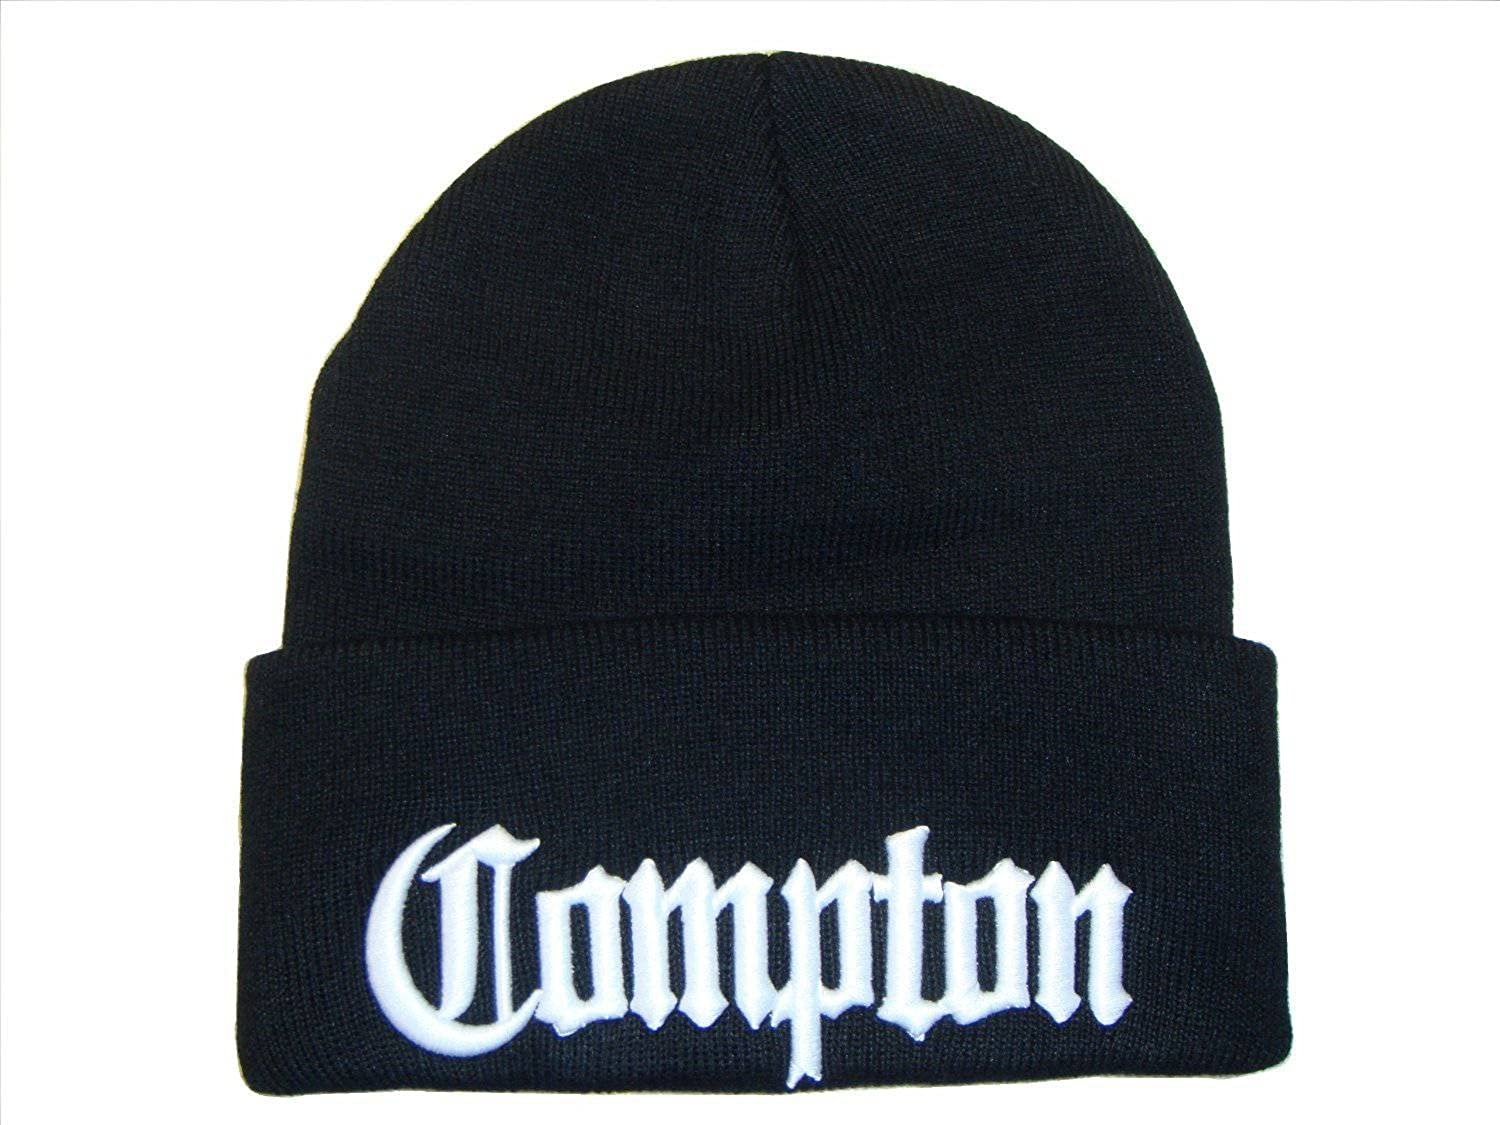 3D Embroidered Compton Eazy E Beanie Cap Hat w/ Sunglasses